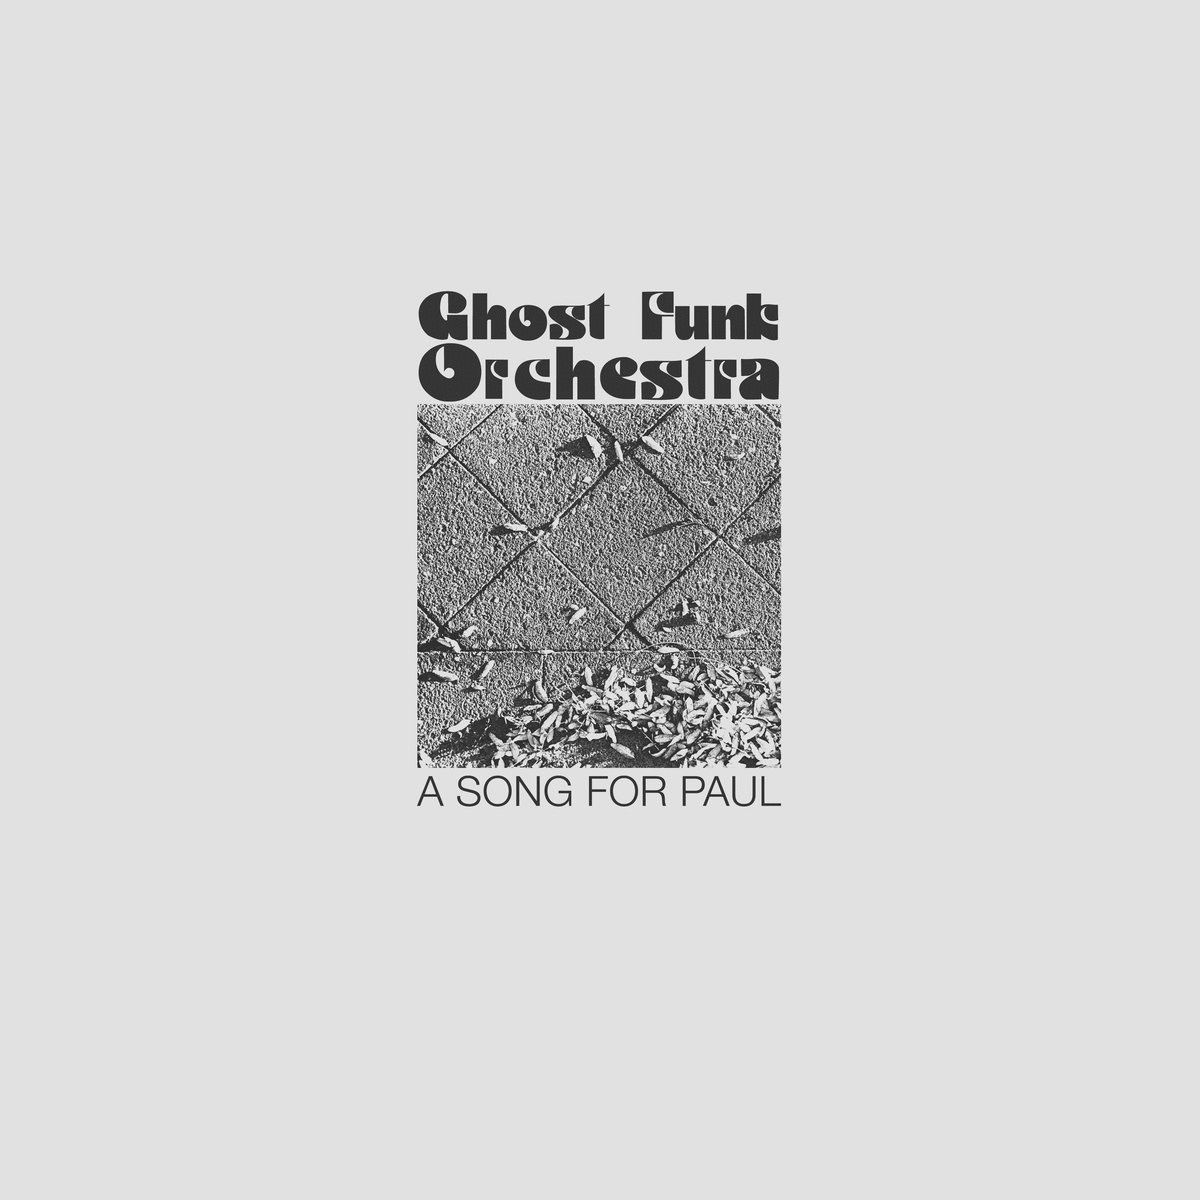 Ghost Funk Orchestra Offer Up  A Song for Paul  and One for Isaac As Well